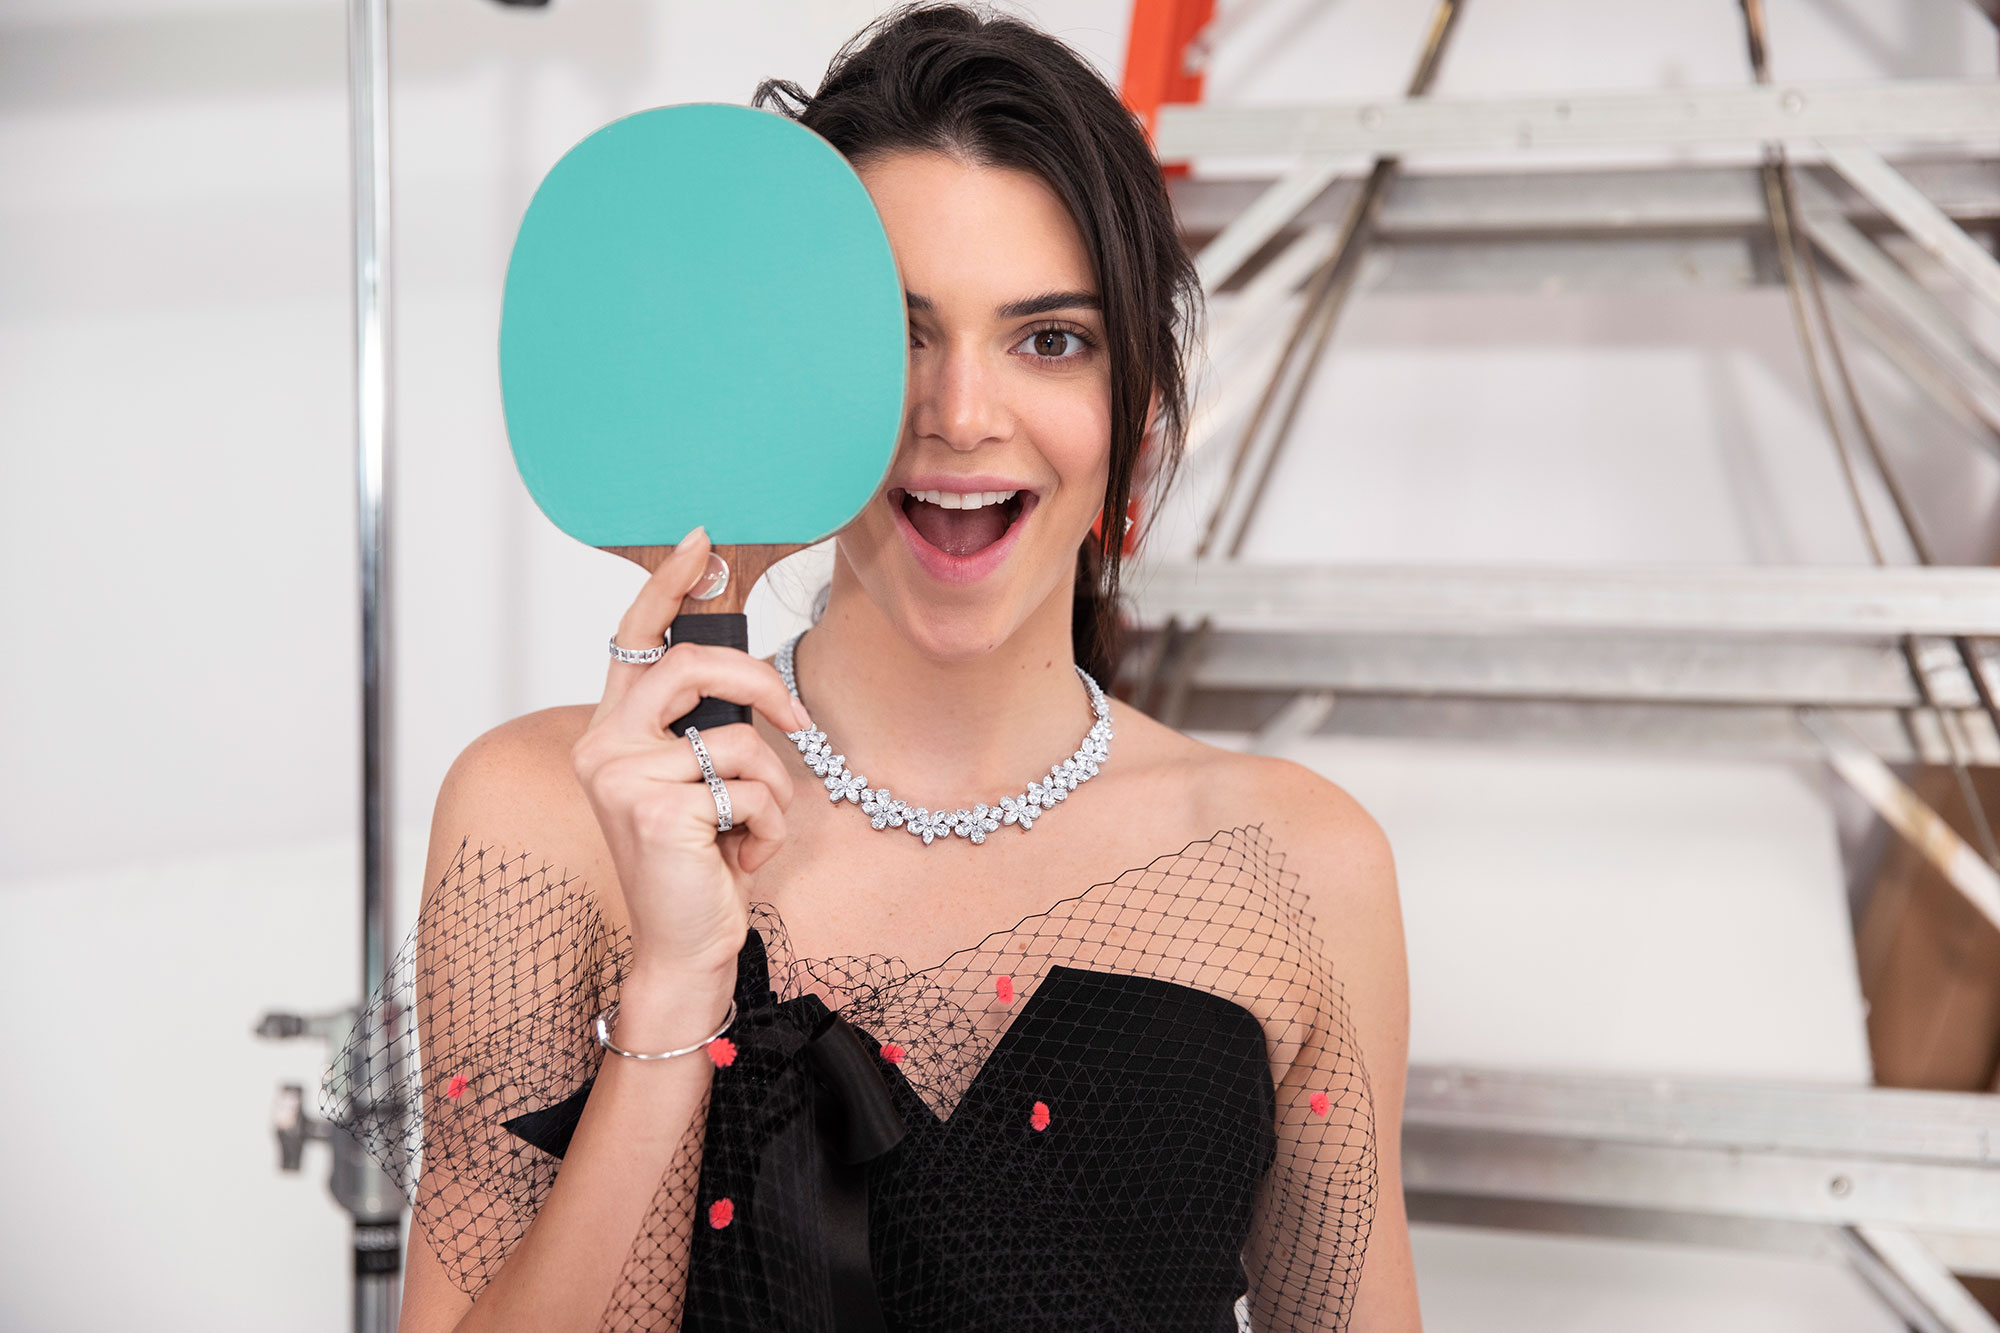 Kendall Jenner Tiffany & Co. Spring Campaign Diamonds - Taking a break from a match, the Tiffany-blue paddle covers half her face, making the giant diamond necklace stand out even more.